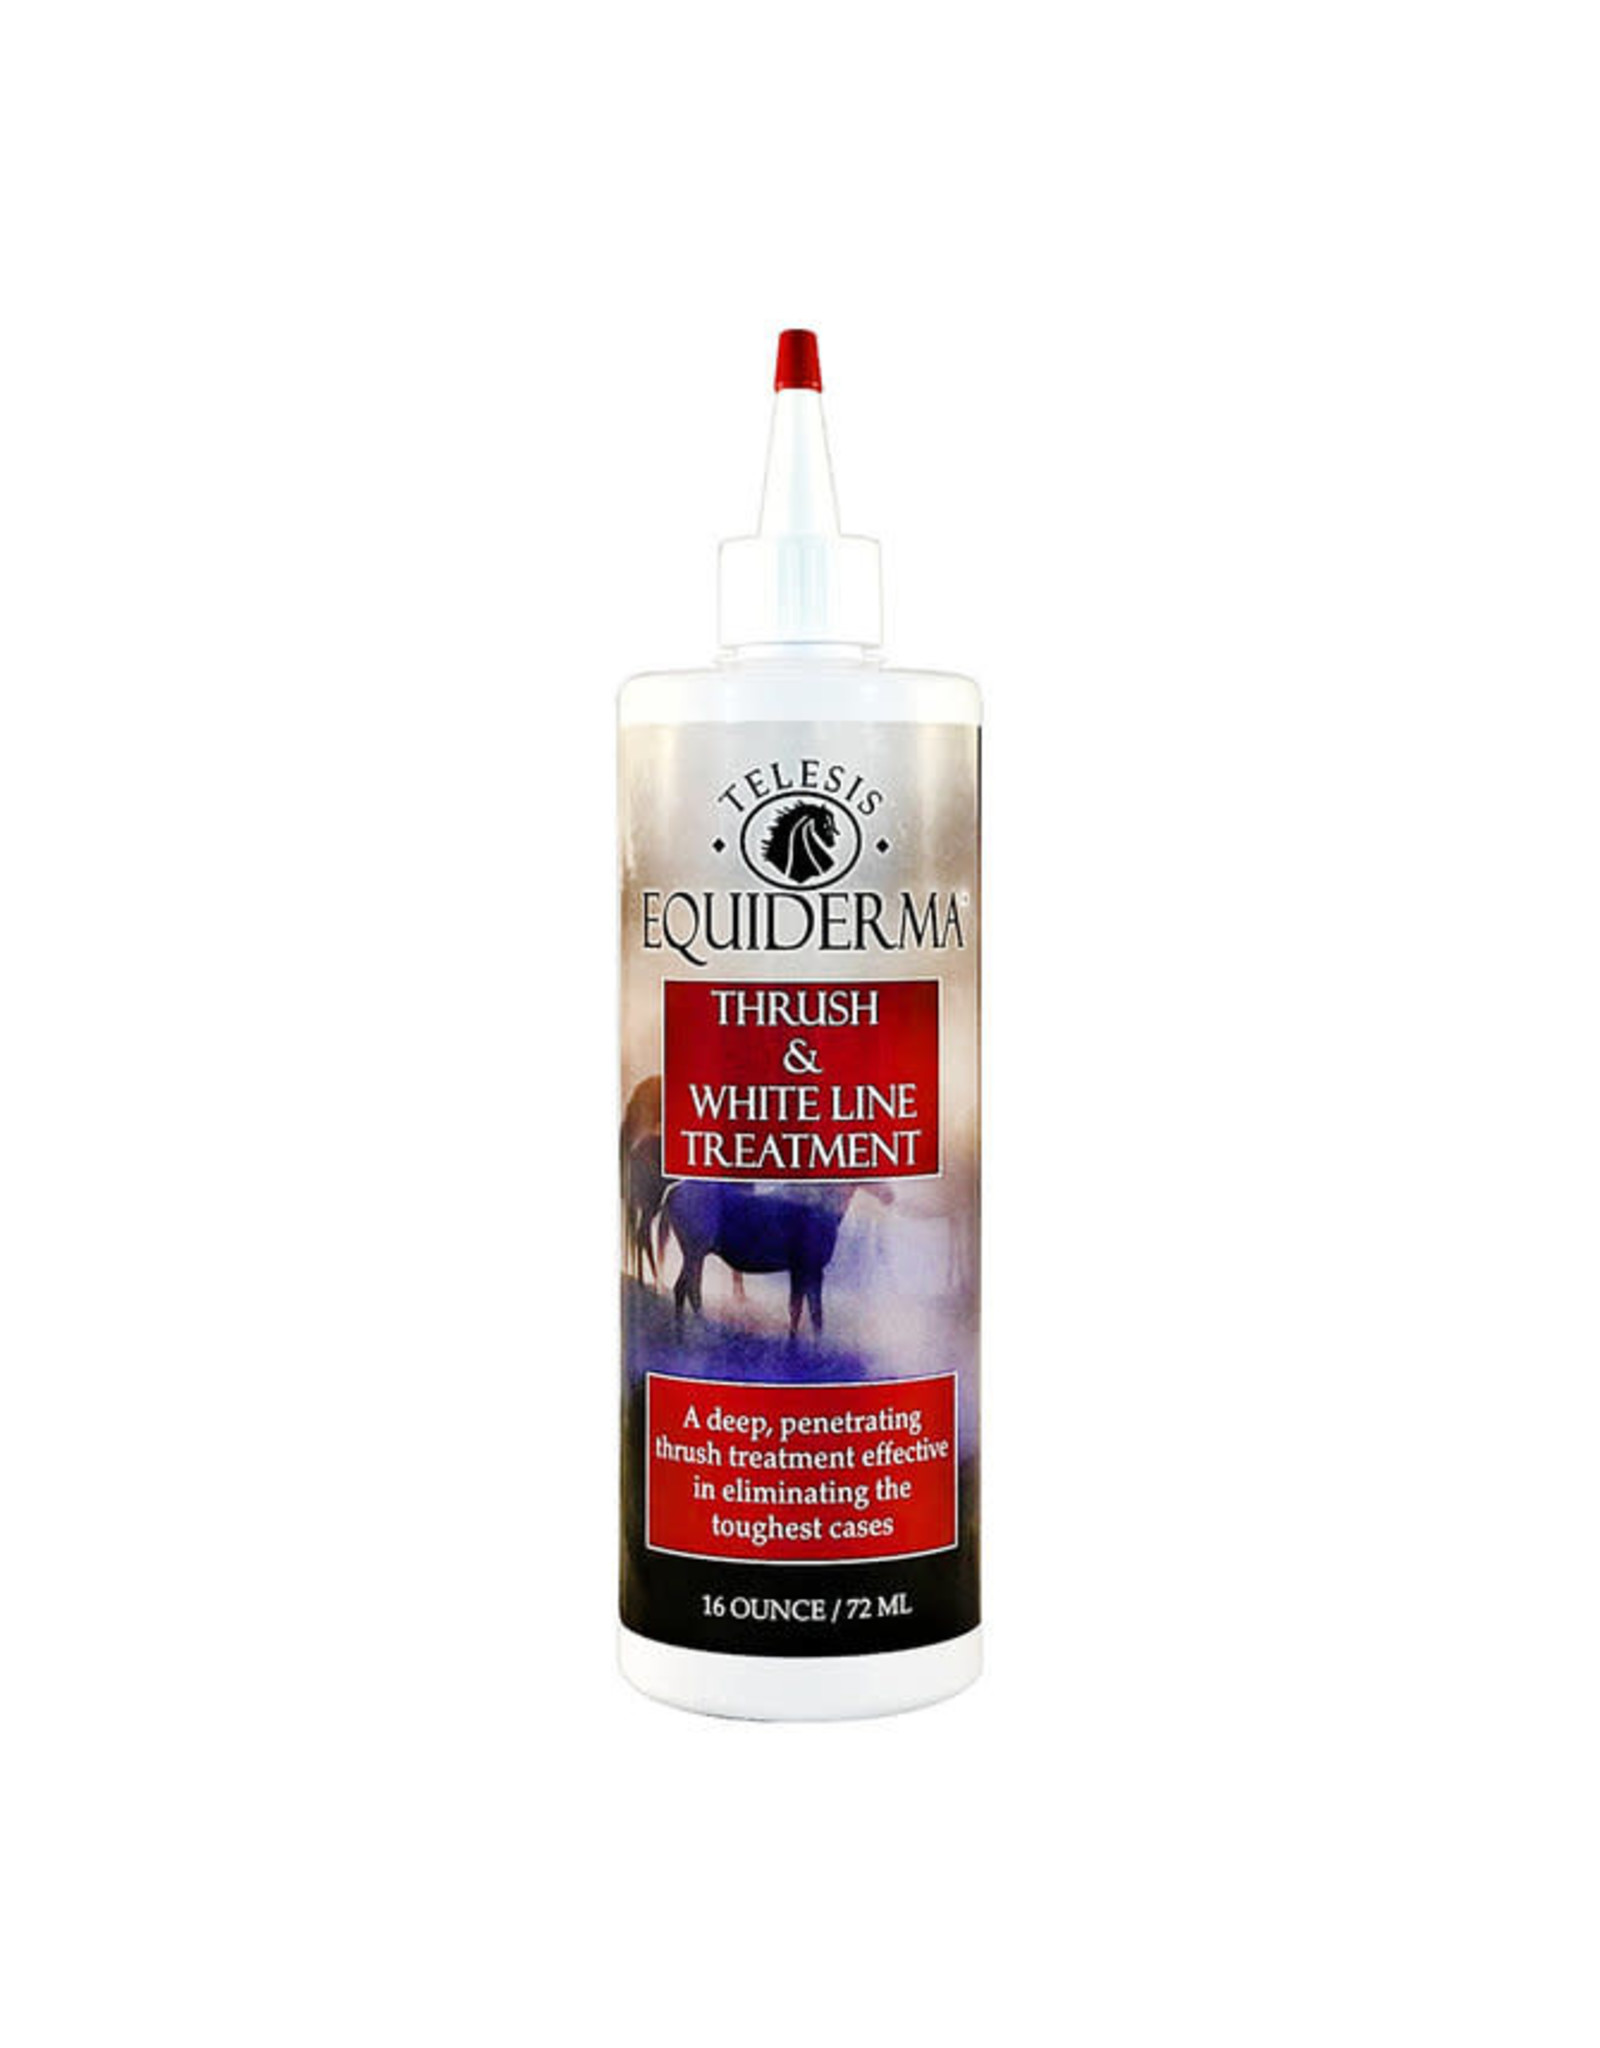 Equiderma Equiderma Thrush & White Line Treatment 16oz